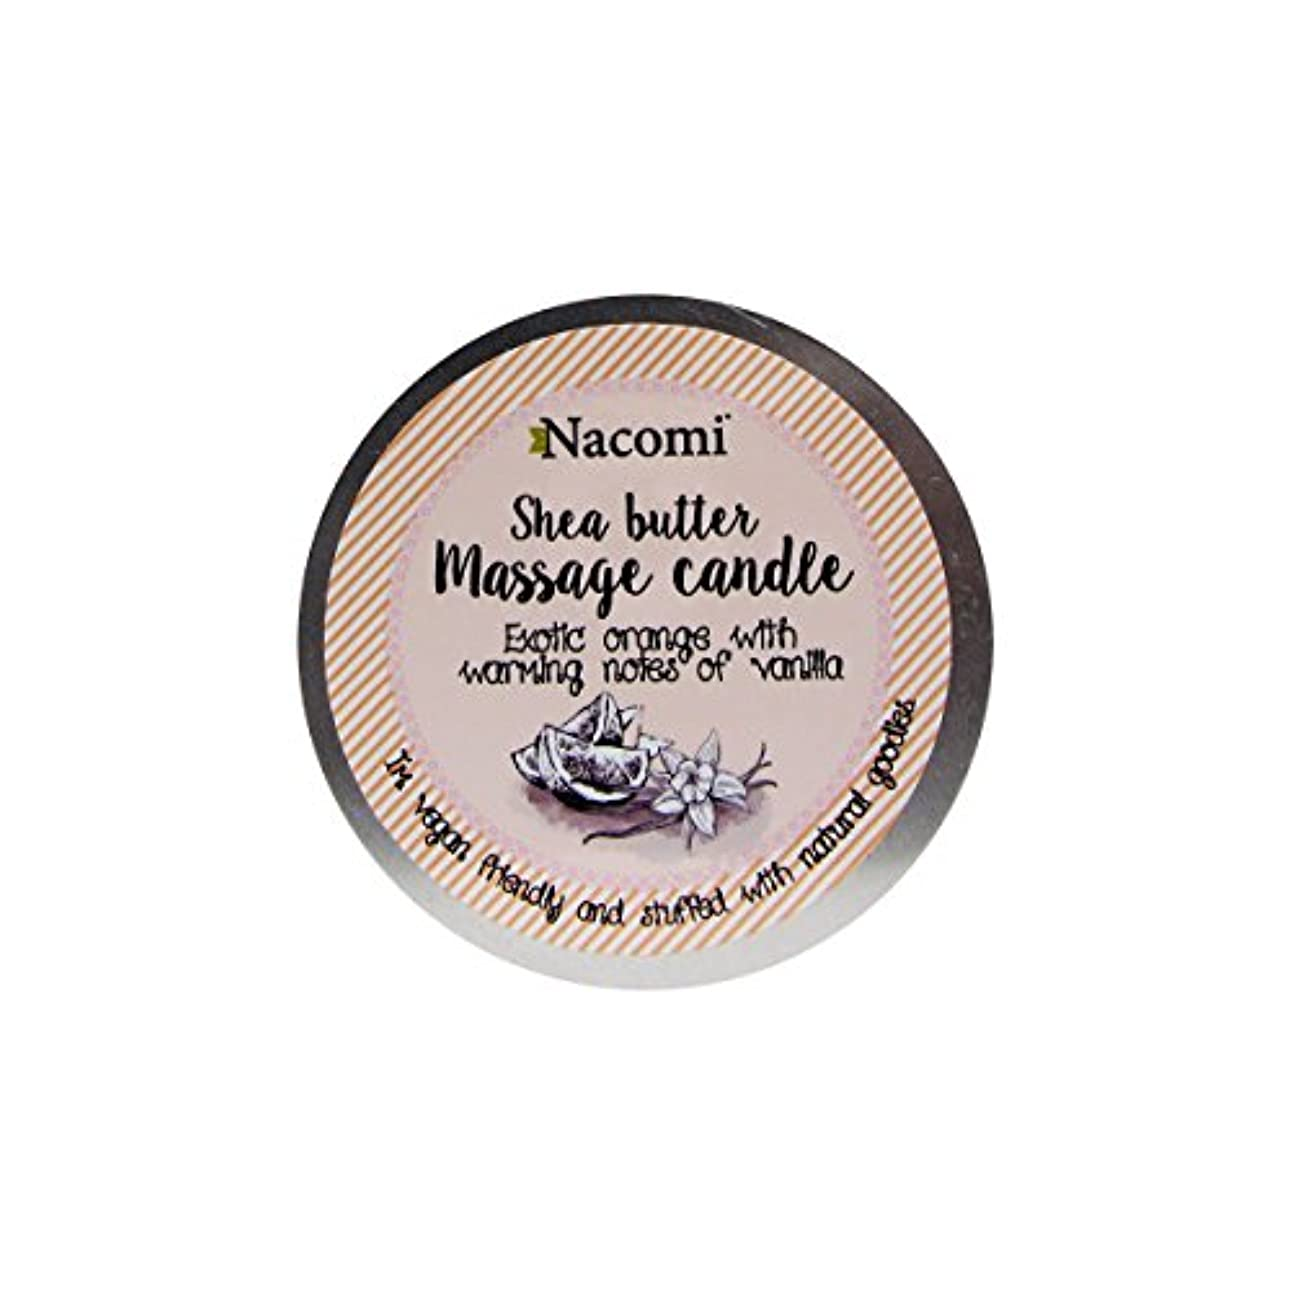 Nacomi Shea Butter Massage Candle Exotic Orange With Warming Notes Of Vanilla 150g [並行輸入品]